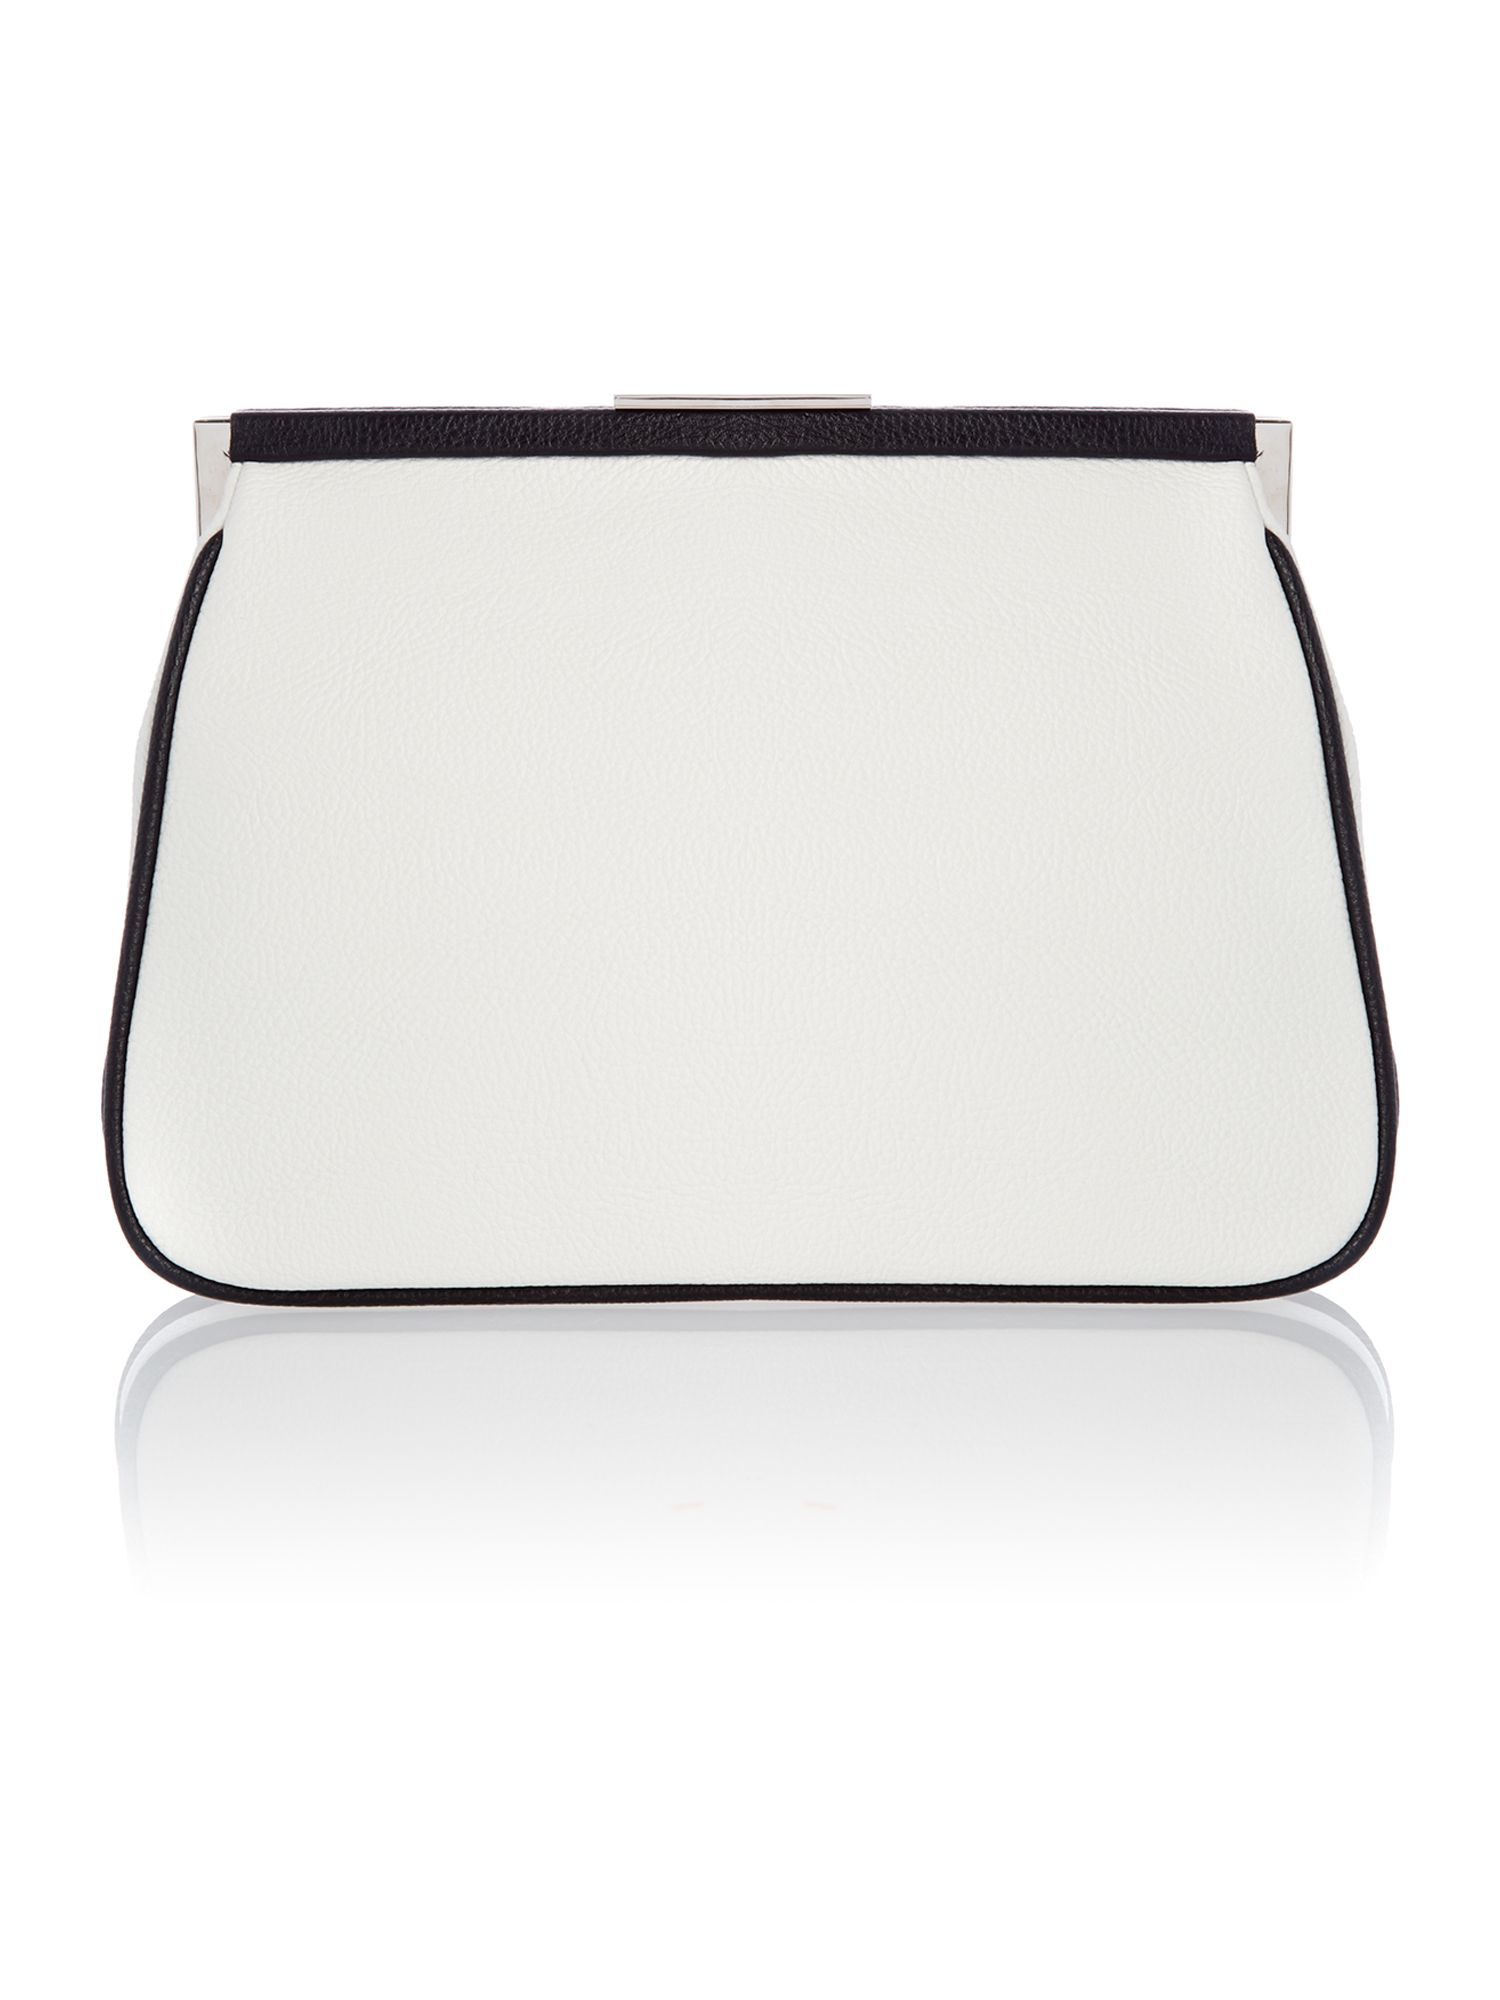 Multi-coloured frame clutch bag